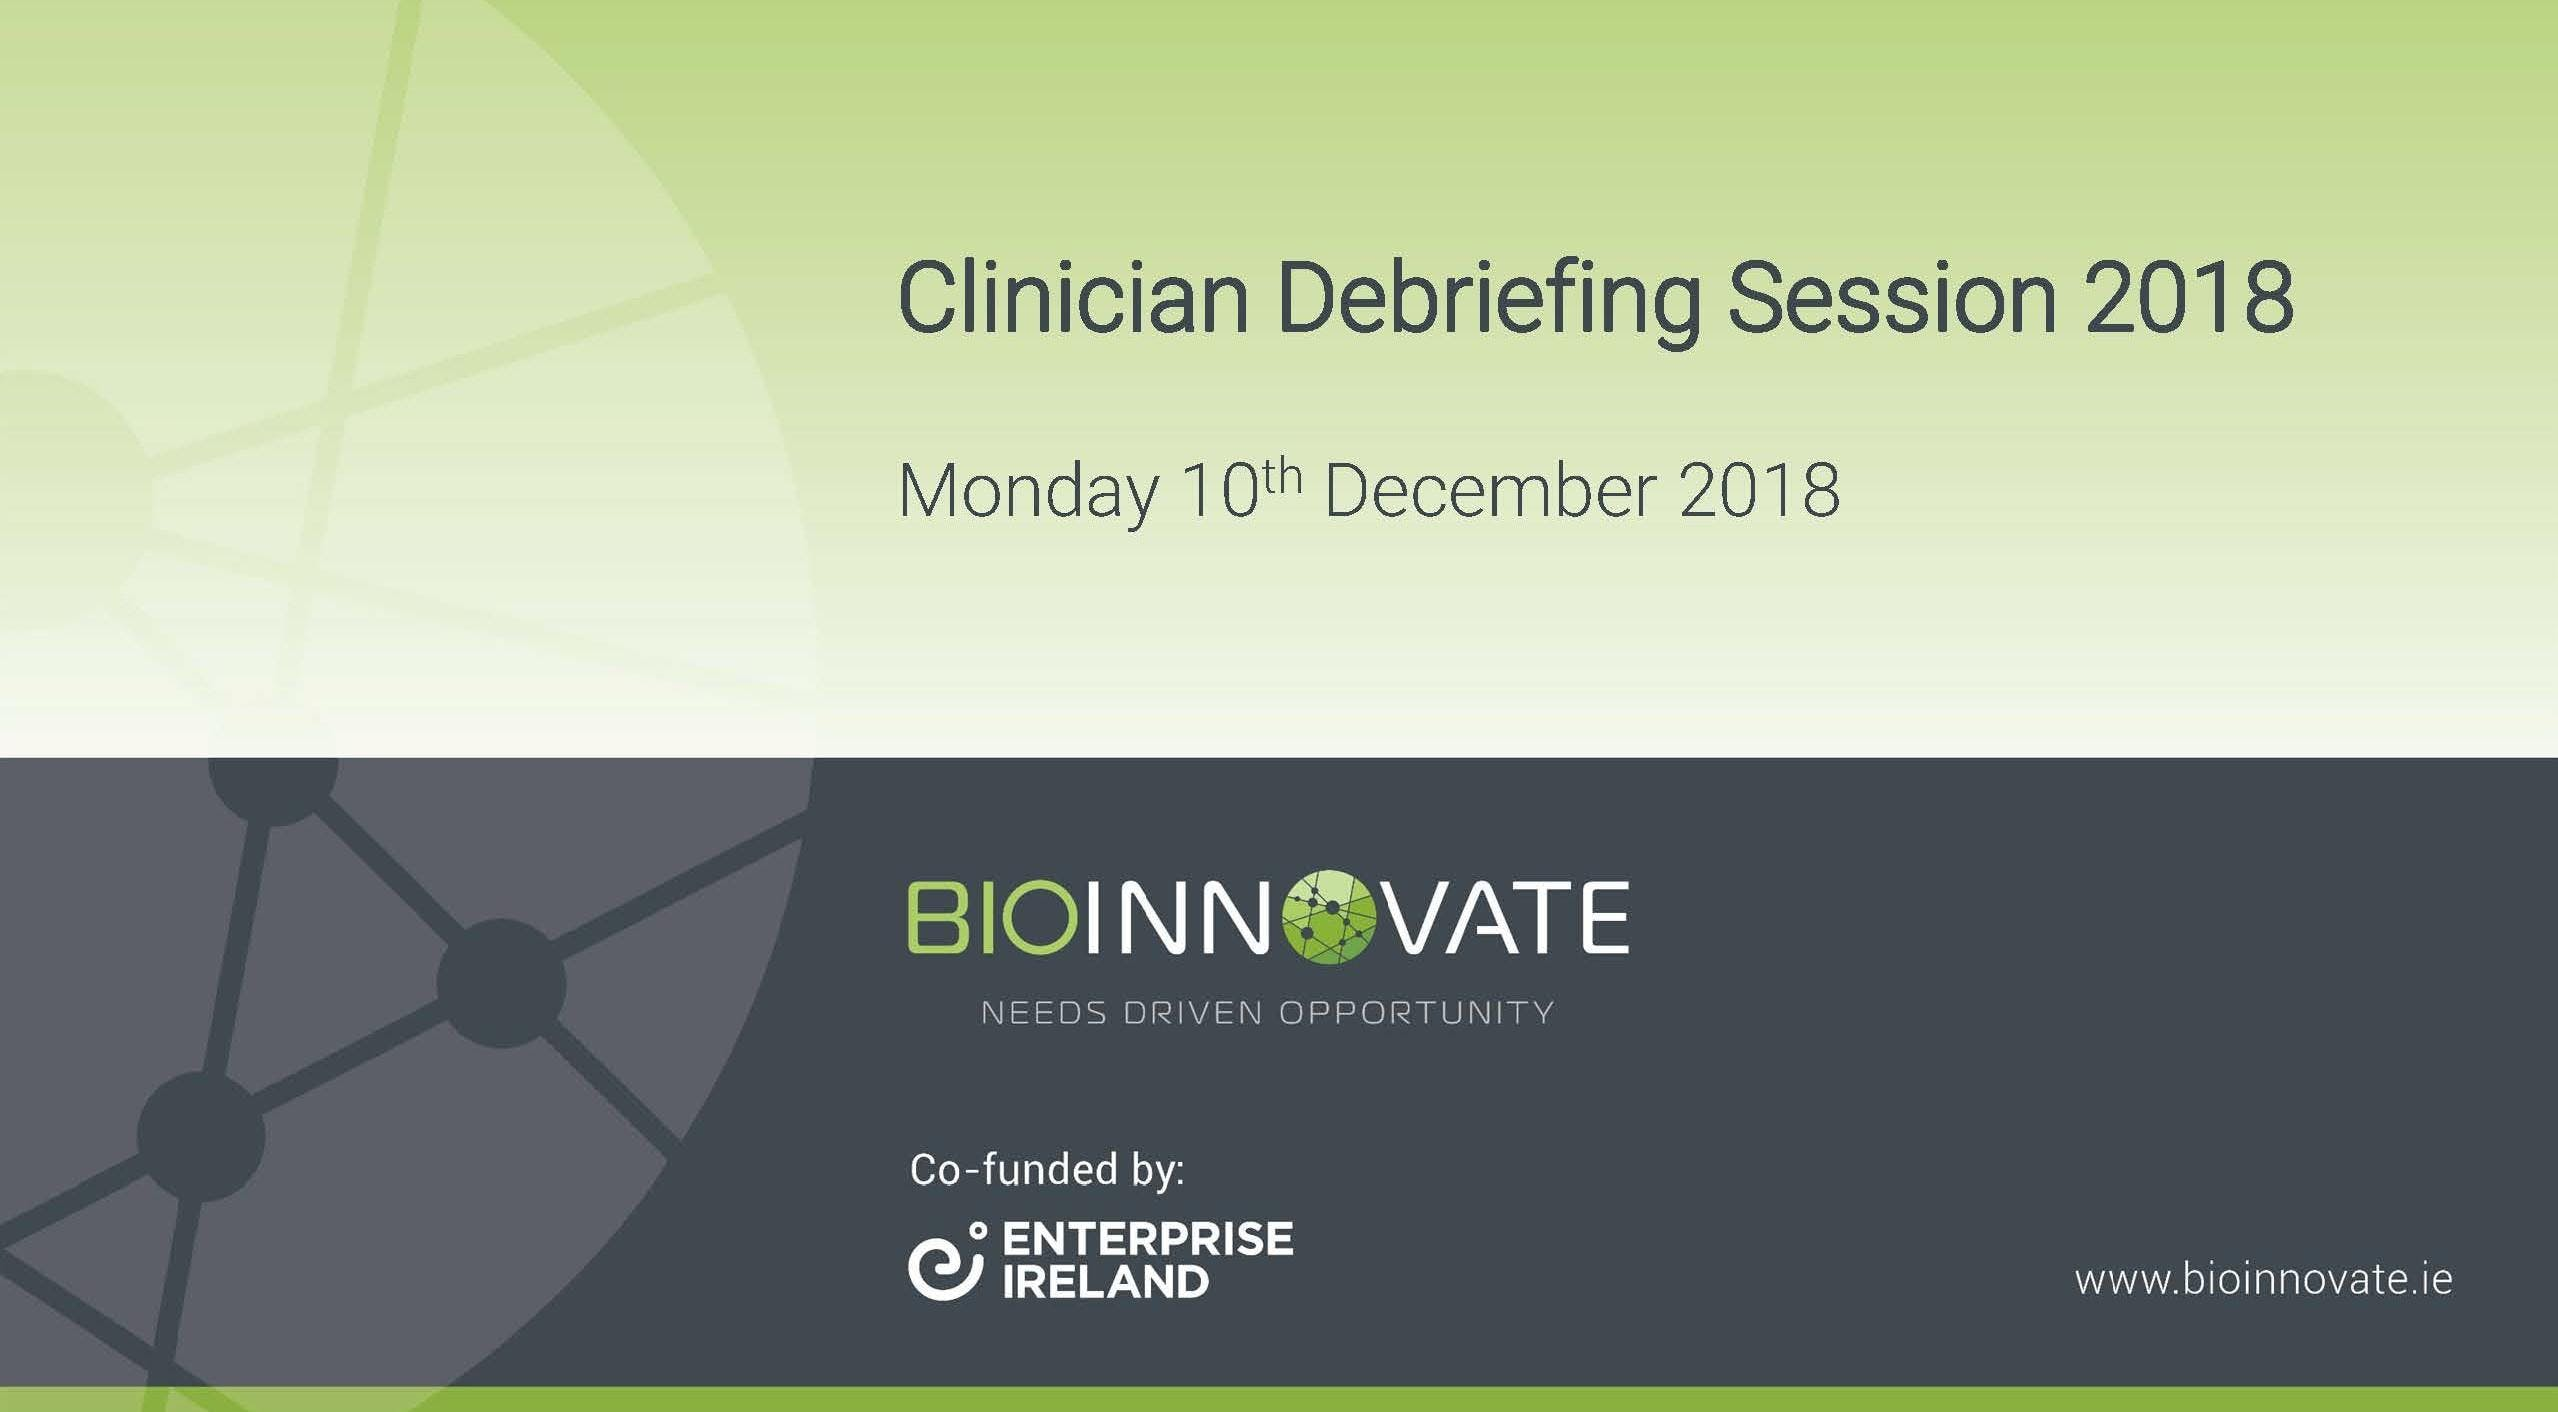 BioInnovate Clinician Breakfast Debriefing Session 2018